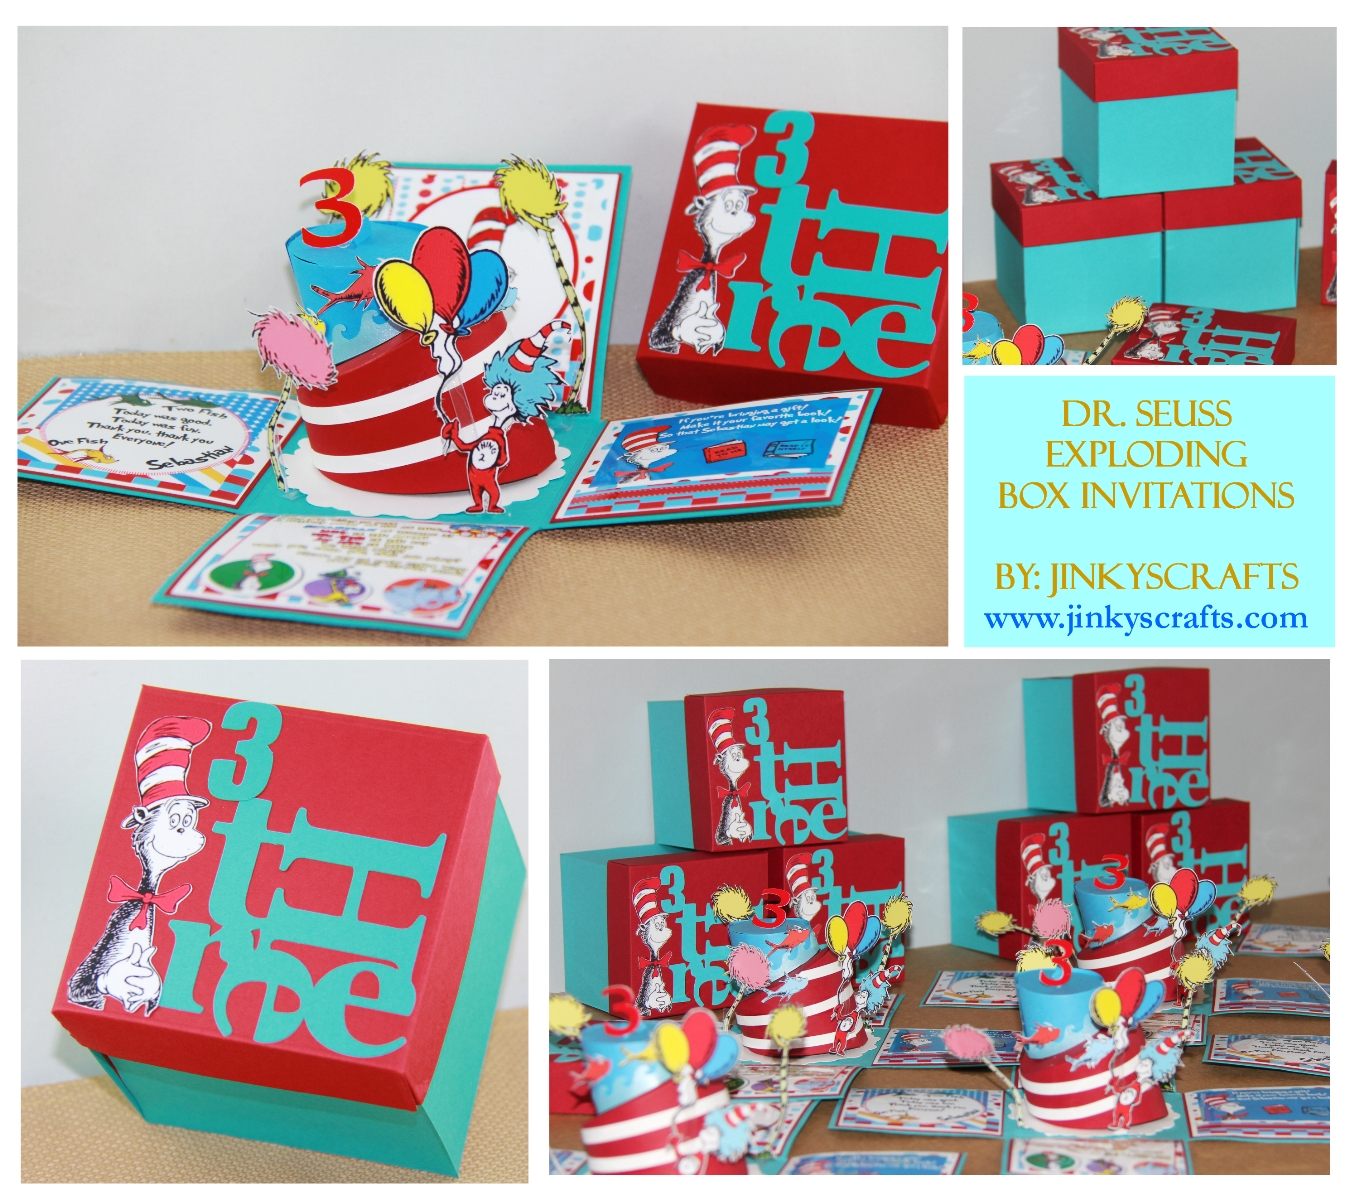 DR. SEUSS THEMED PARTY INVITES - Jinkys Crafts